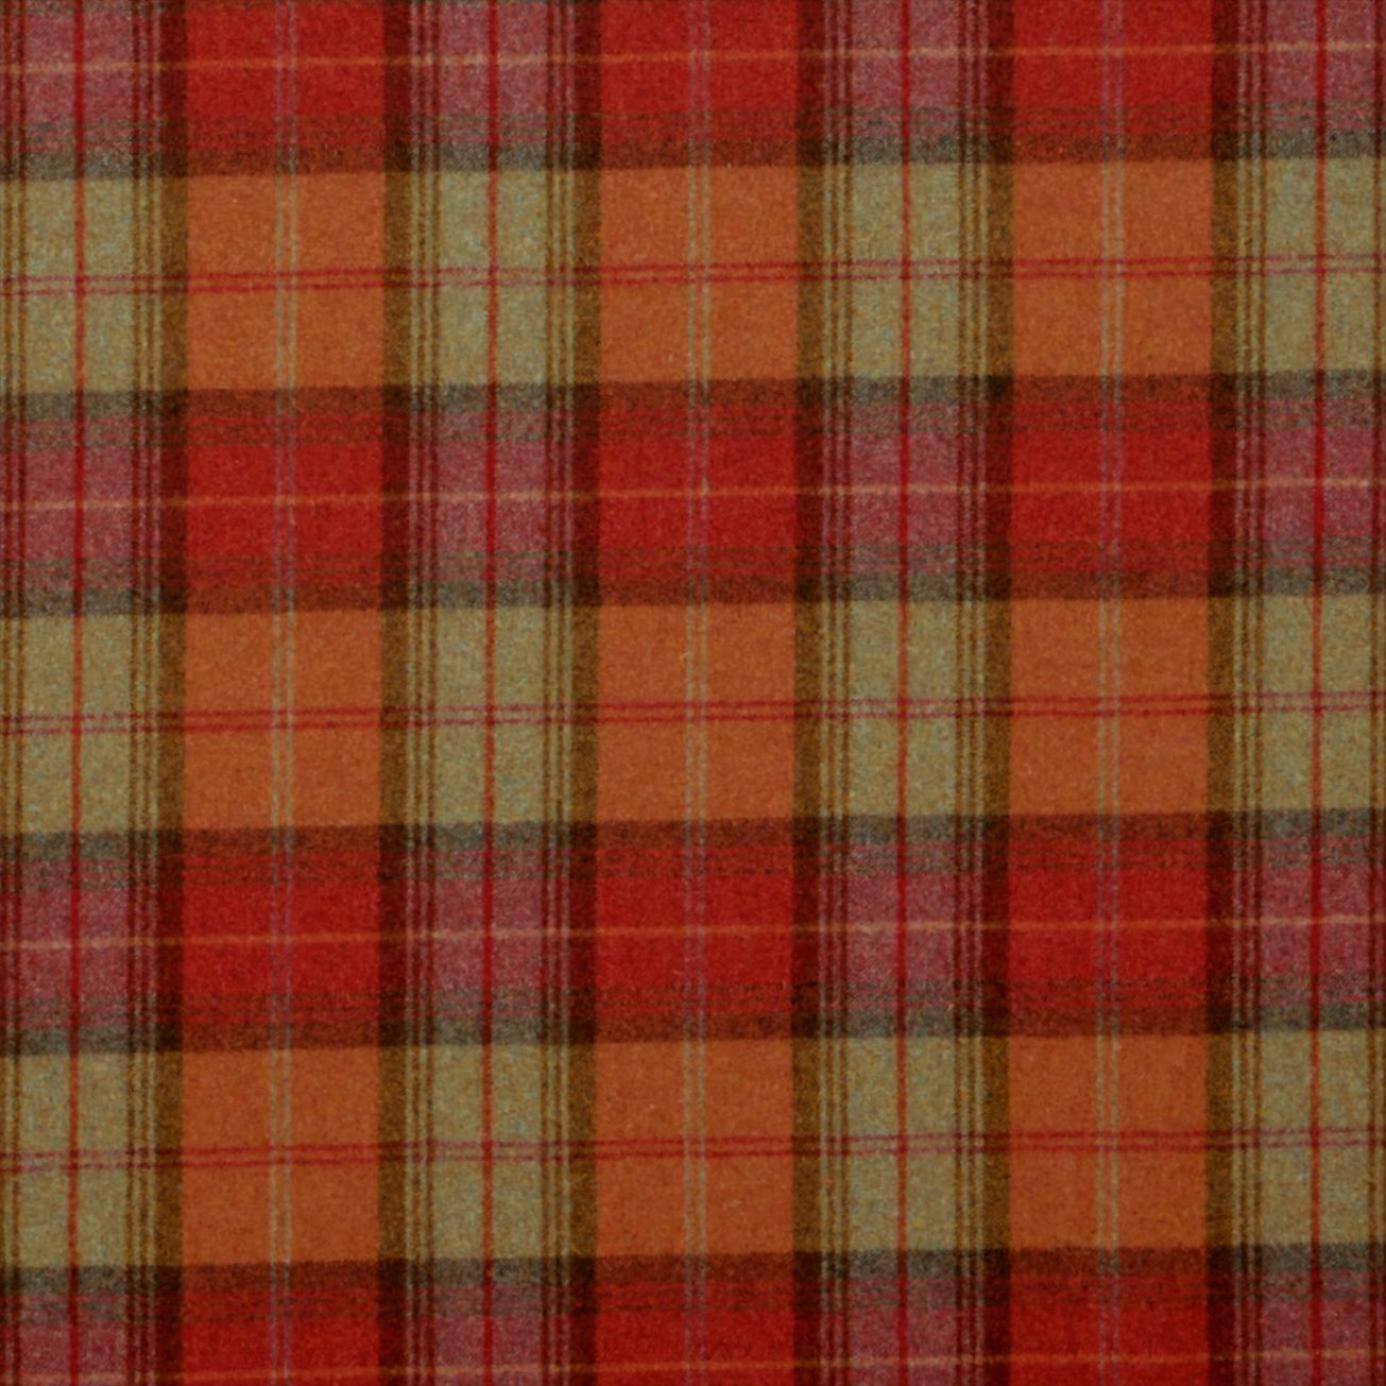 Curtains in Woodford Plaid Fabric - Brick/Wine (DHIGWP301) - Sanderson ...